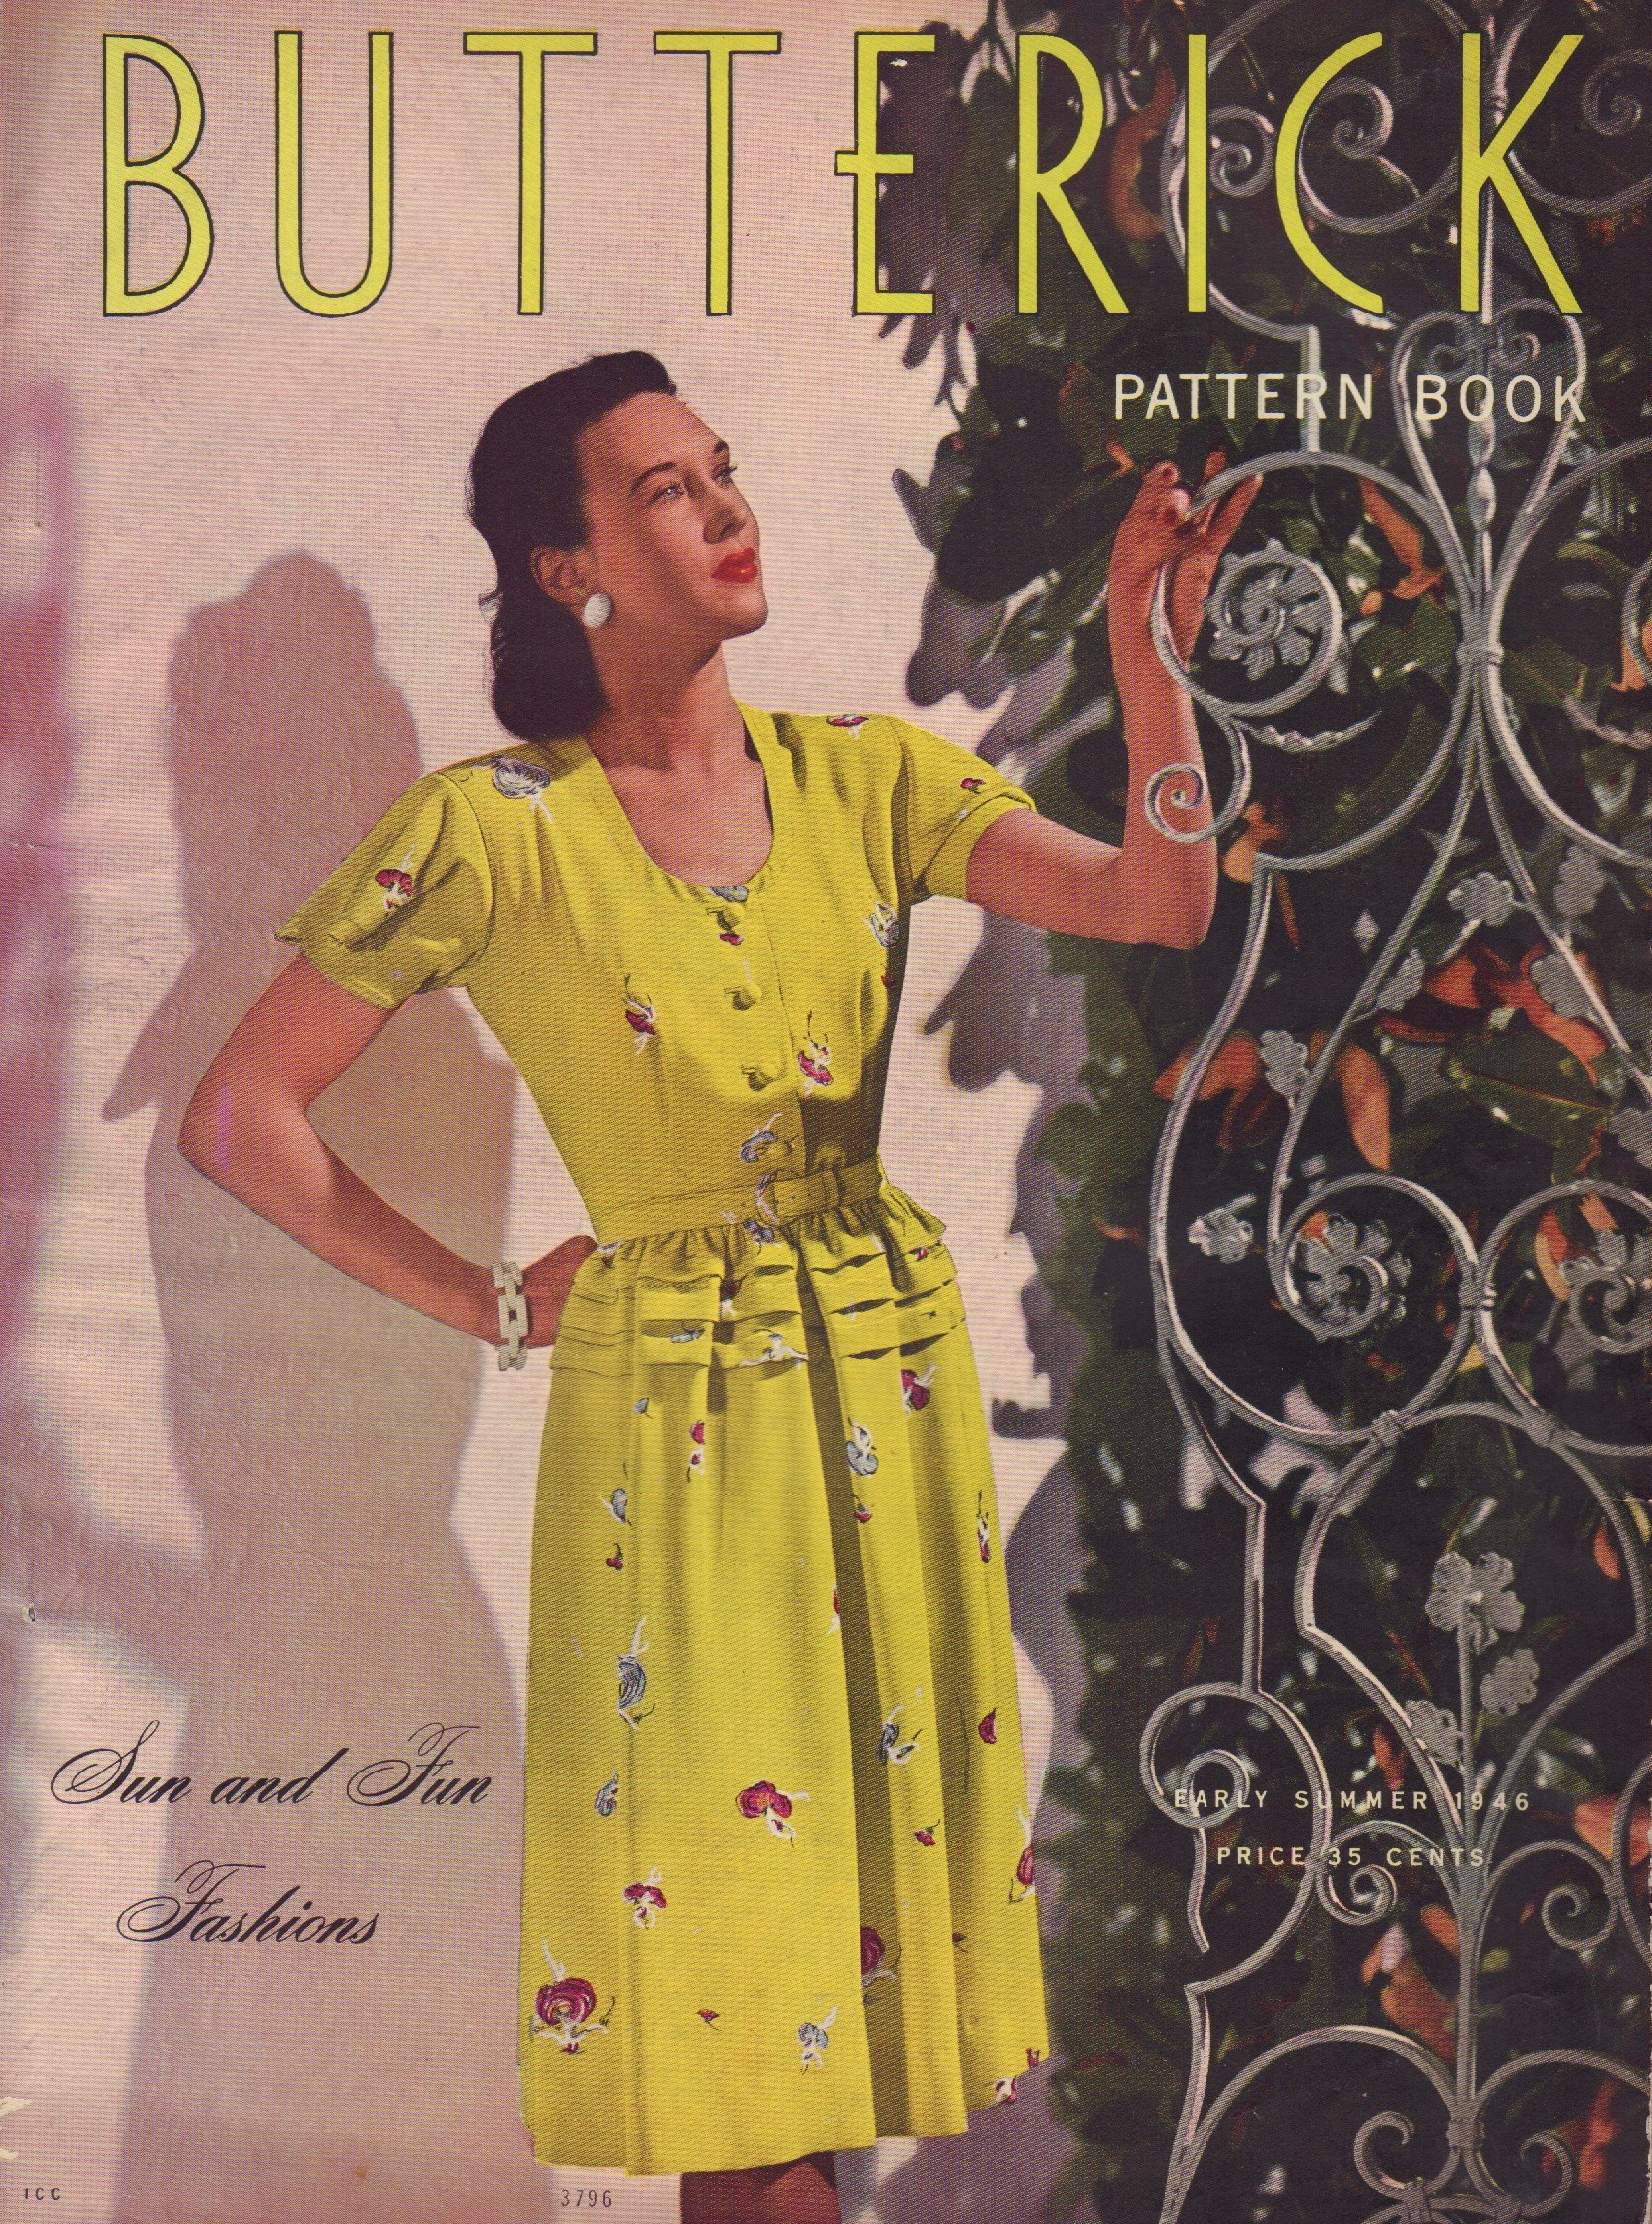 Image for Butterick Pattern Book - Early Summer 1946 (Volume 38, Number 2)